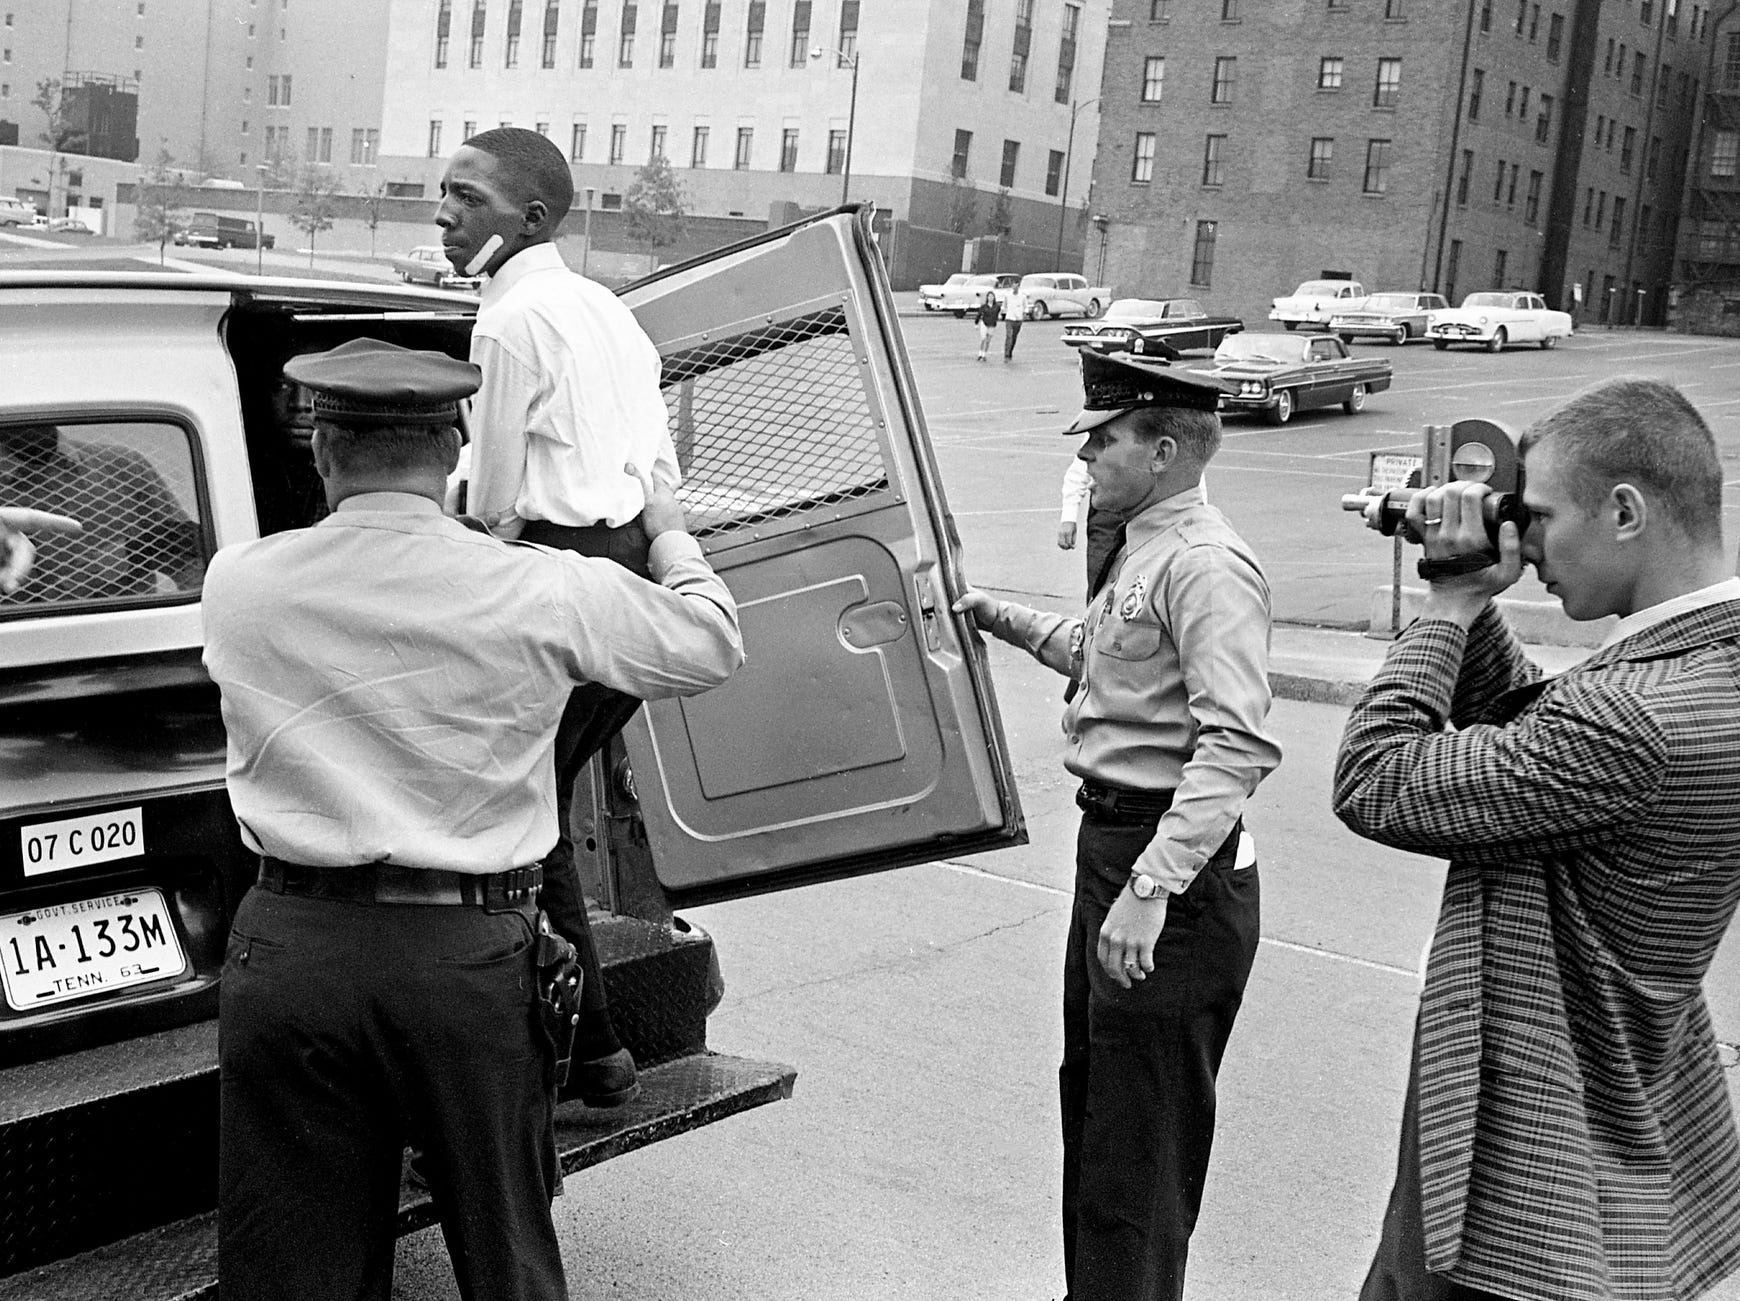 Louis Miller, 16, who was charged with throwing a brick that broke a car windshield, is put into the paddy wagon May 11, 1963, at First Baptist Church. Miller will be on his way to juvenile detention. City photographer Milton McClurkan is at right.